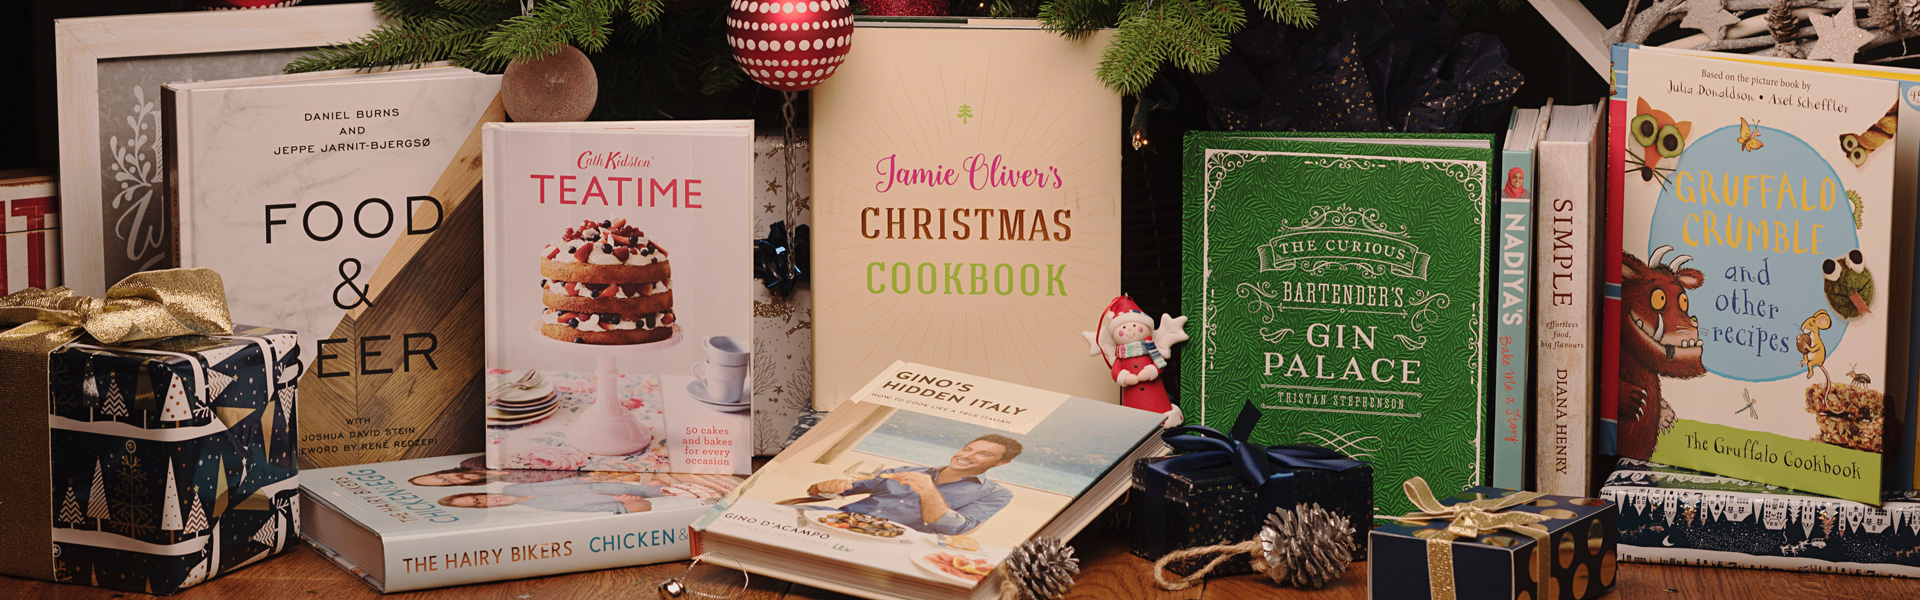 Our Christmas Top Picks: Food, Drink and Cookery Books